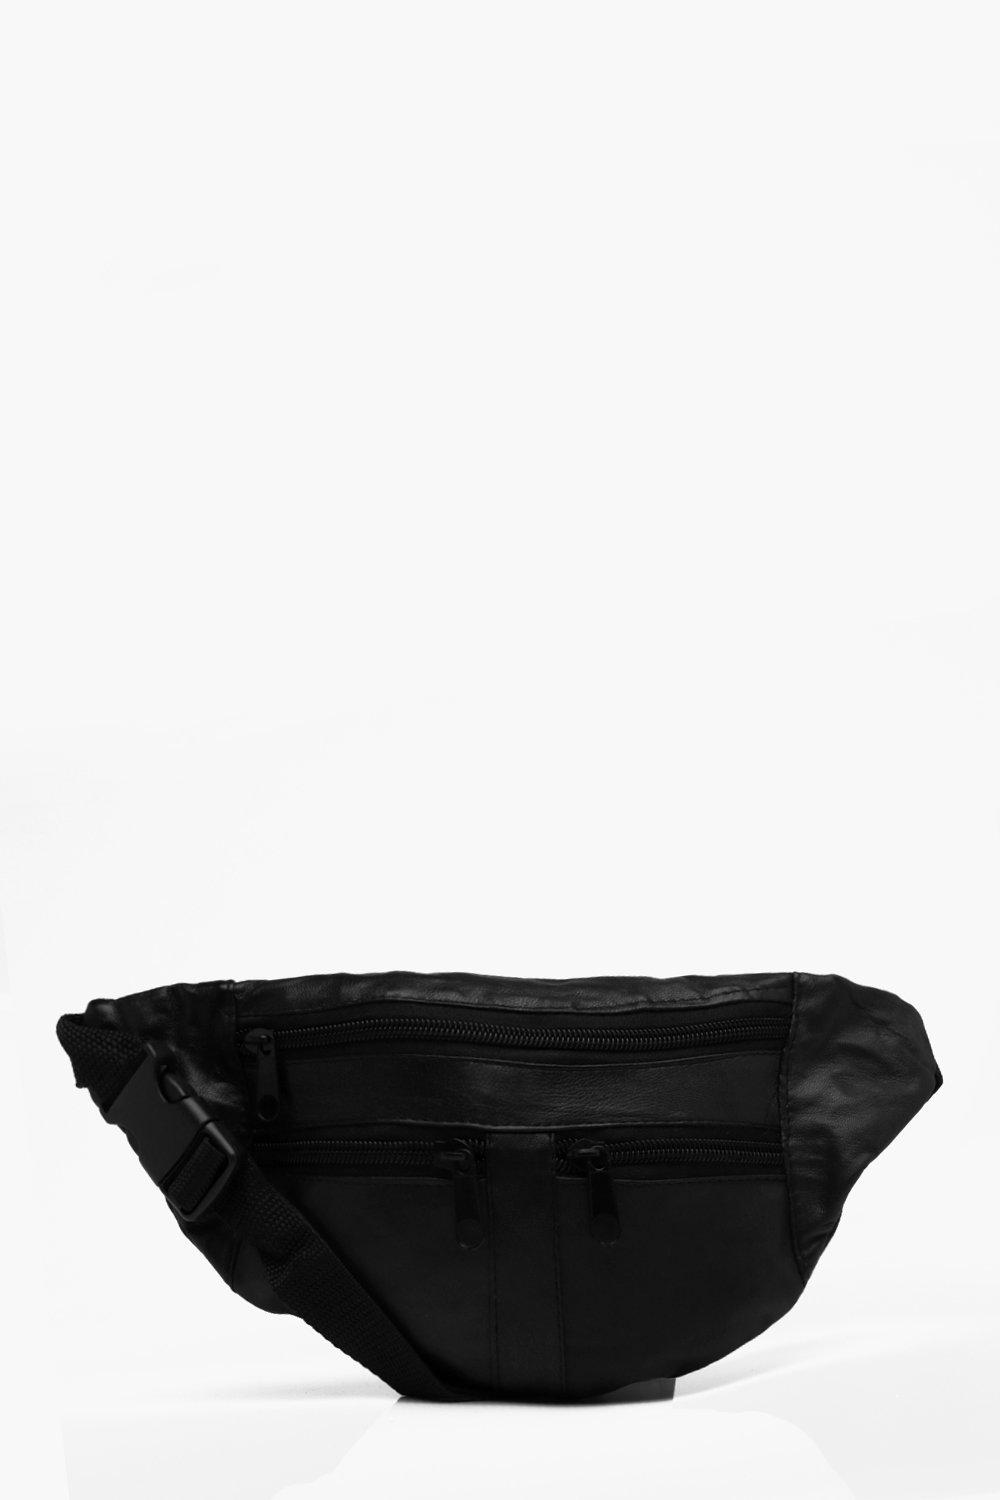 boohooMAN black Real Leather 3 Front Zip Bumbag